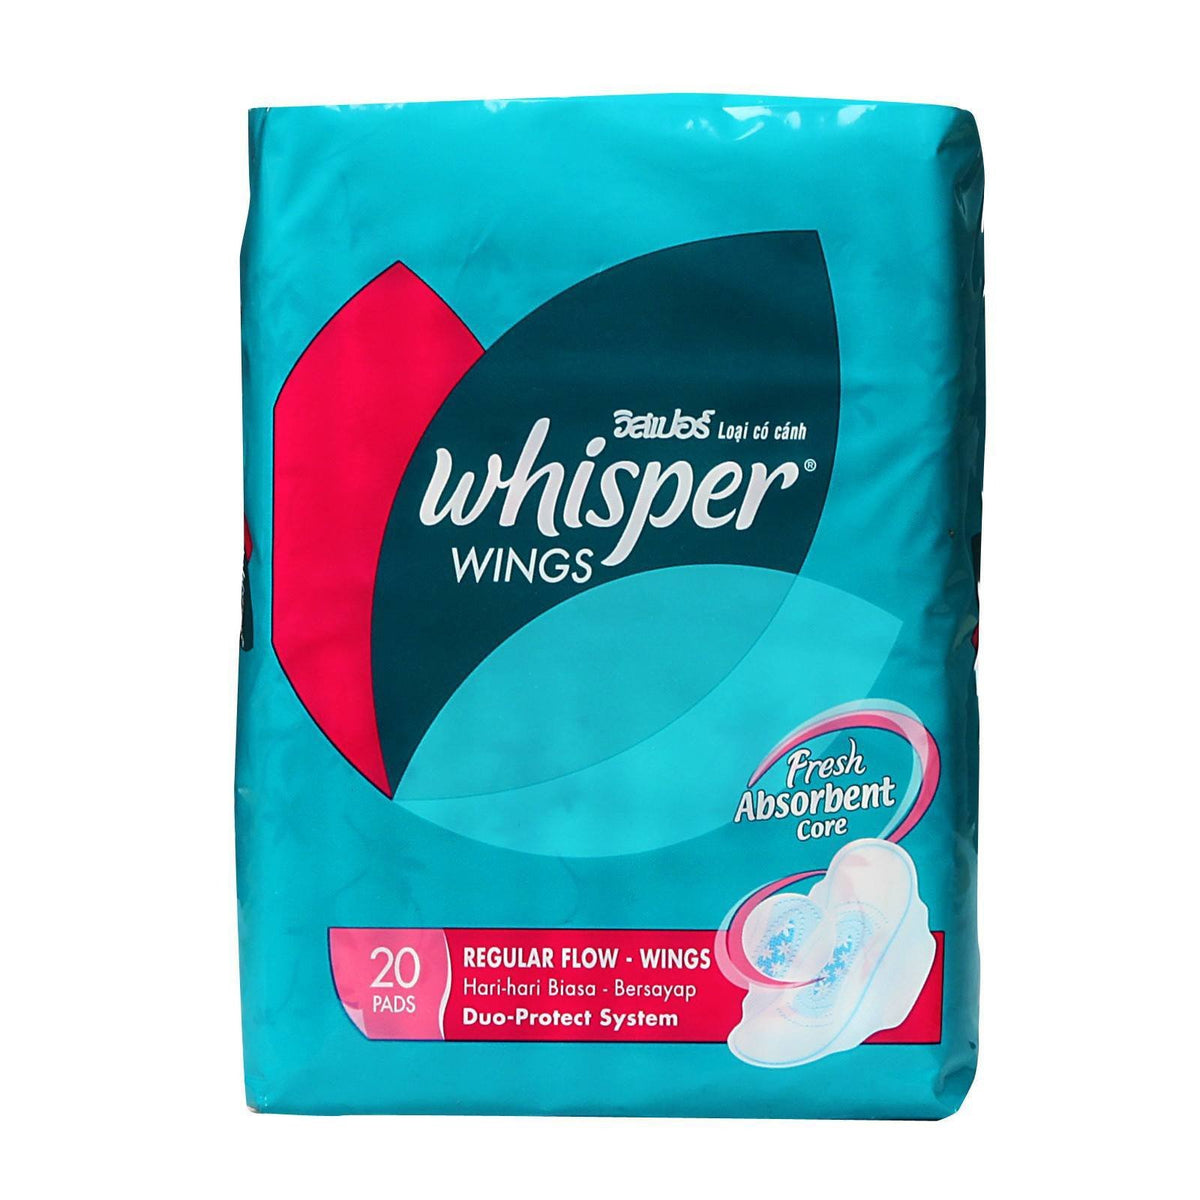 Whisper - Regular Flow Wings 20s Panty Liners - CherryAffairs Singapore